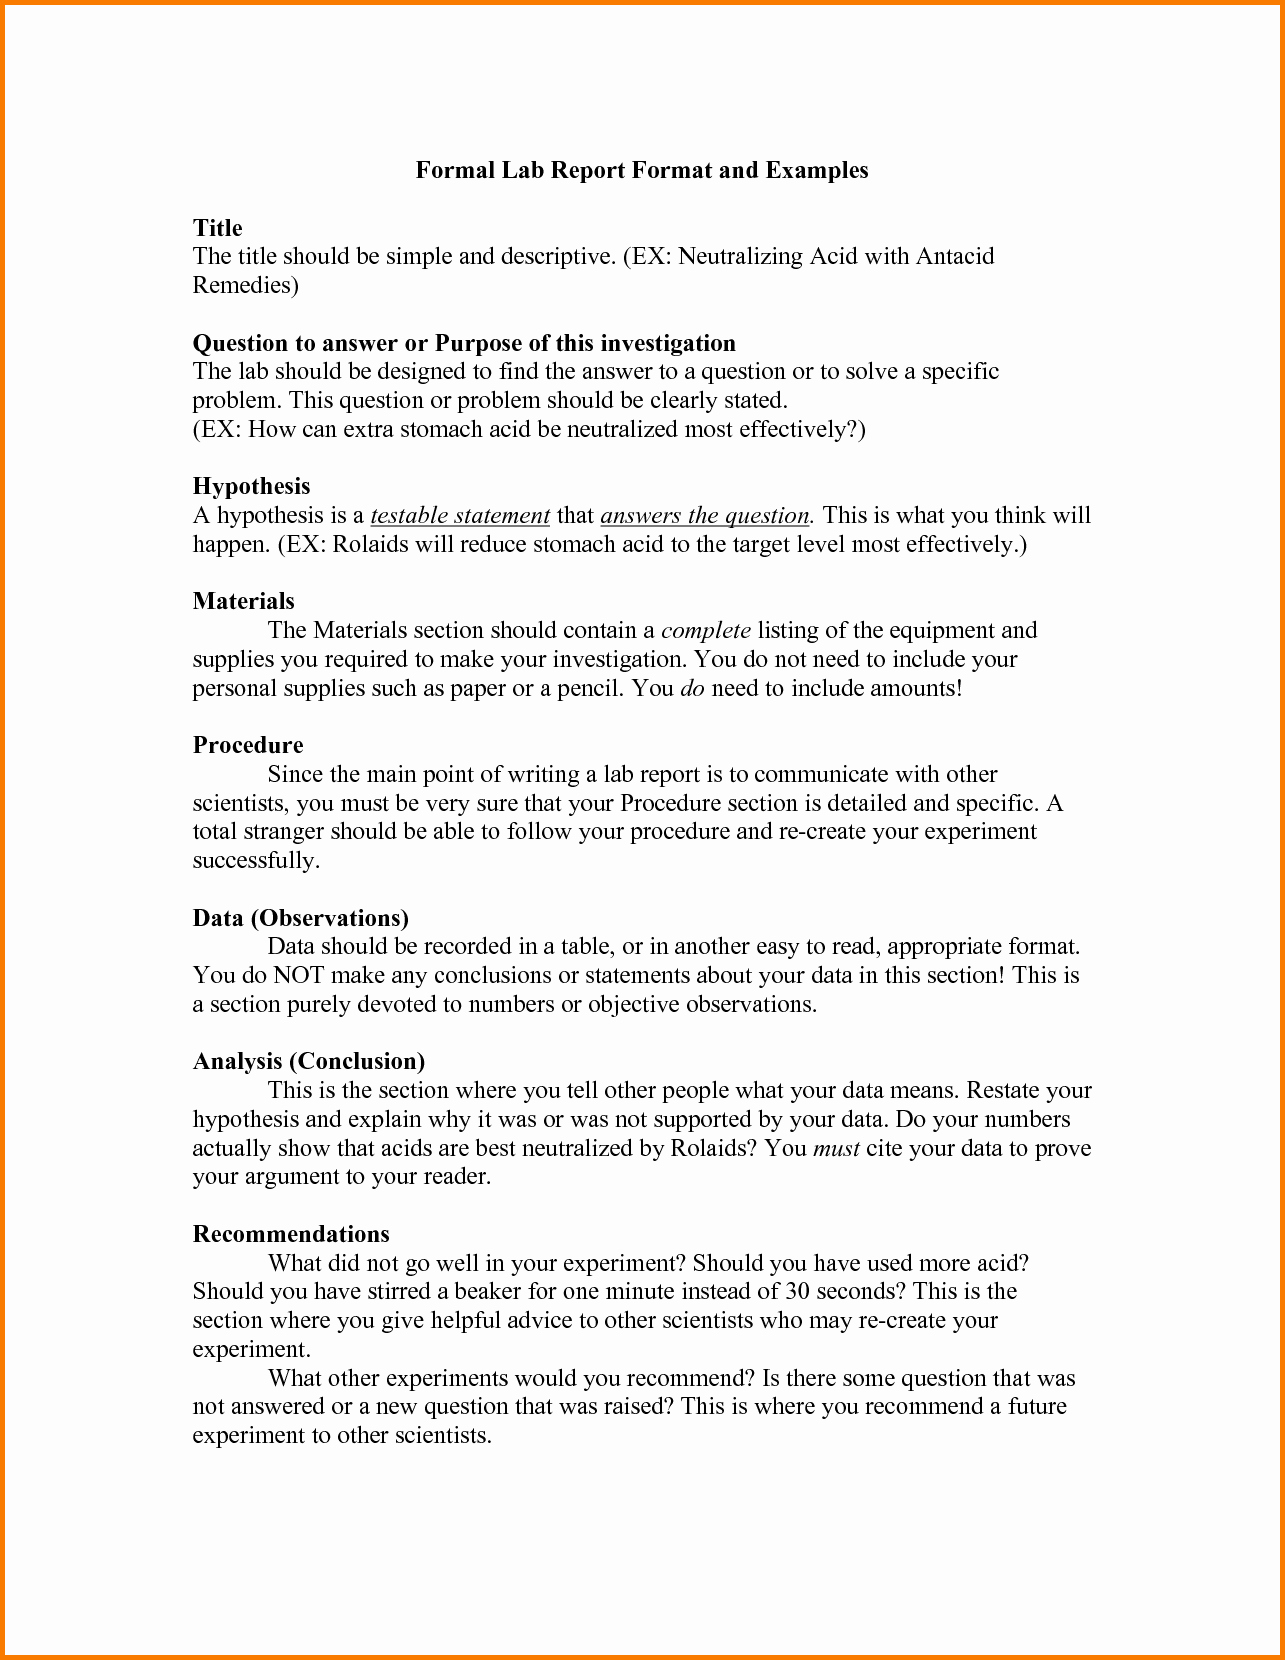 Formal Lab Report Template Luxury 11 formal Lab Report Template